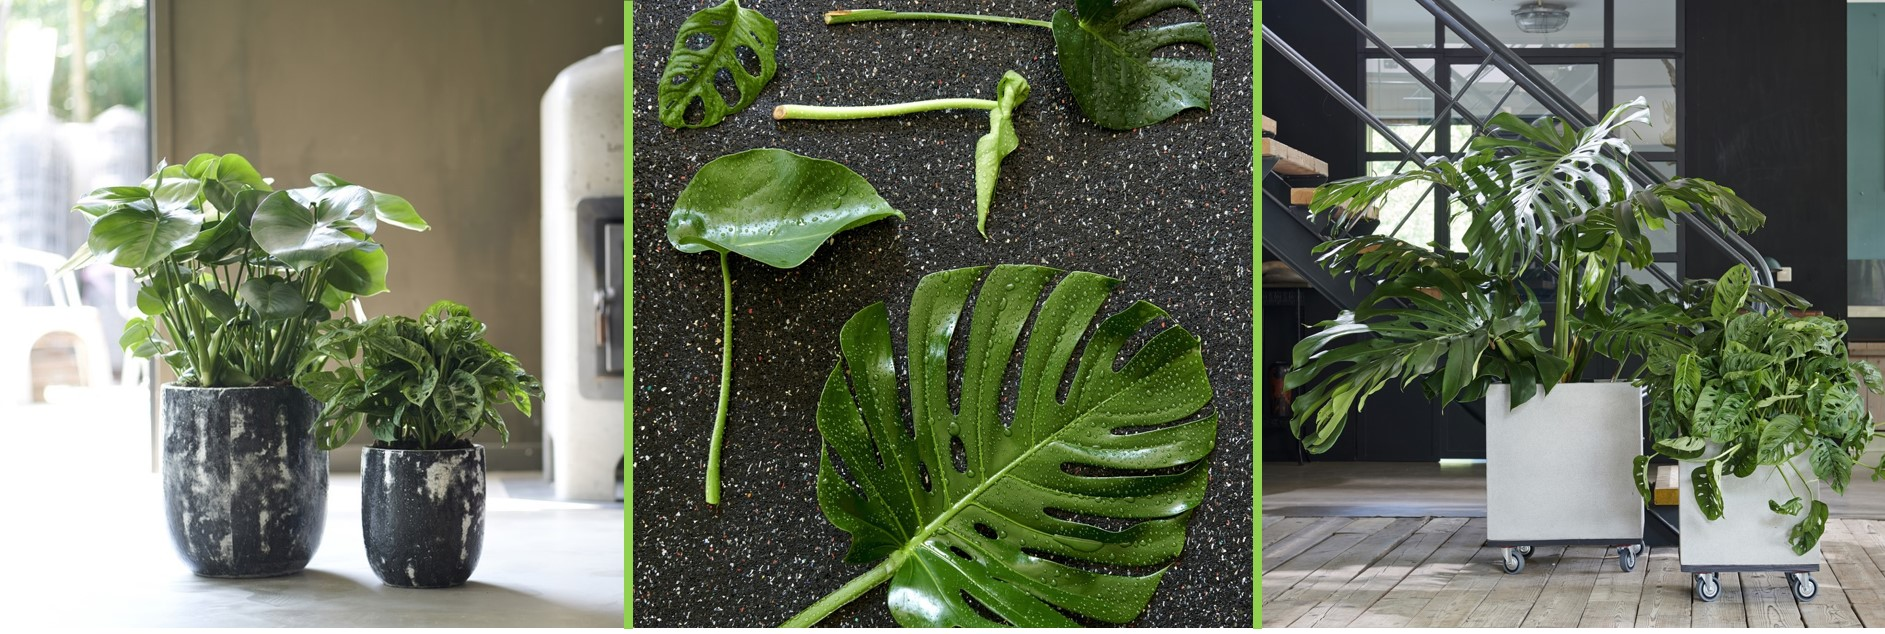 Monstera: July Houseplant of the Month